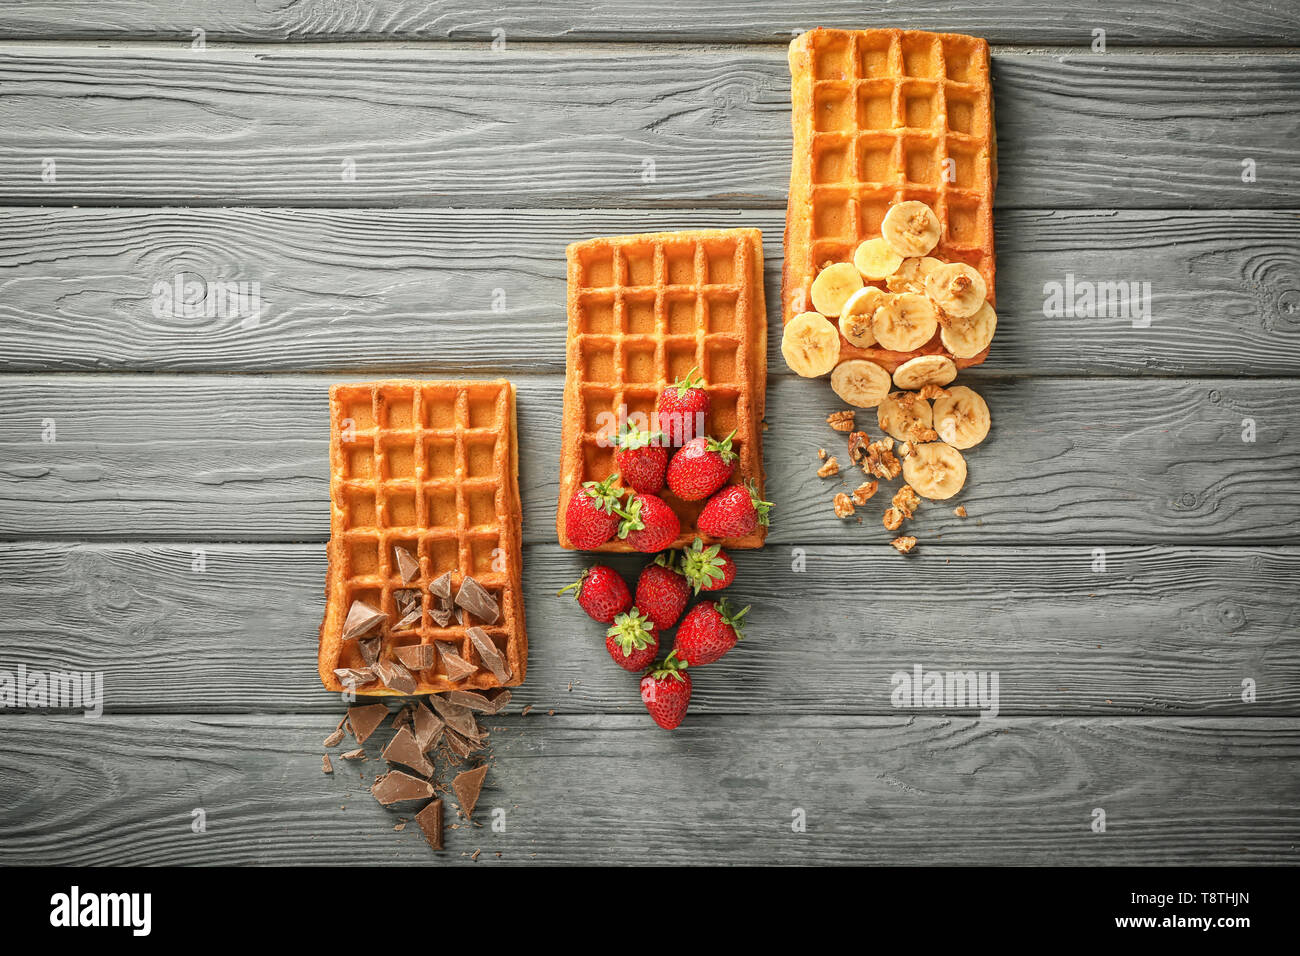 Delicious waffles with banana, berries and chocolate on wooden background, flat lay - Stock Image